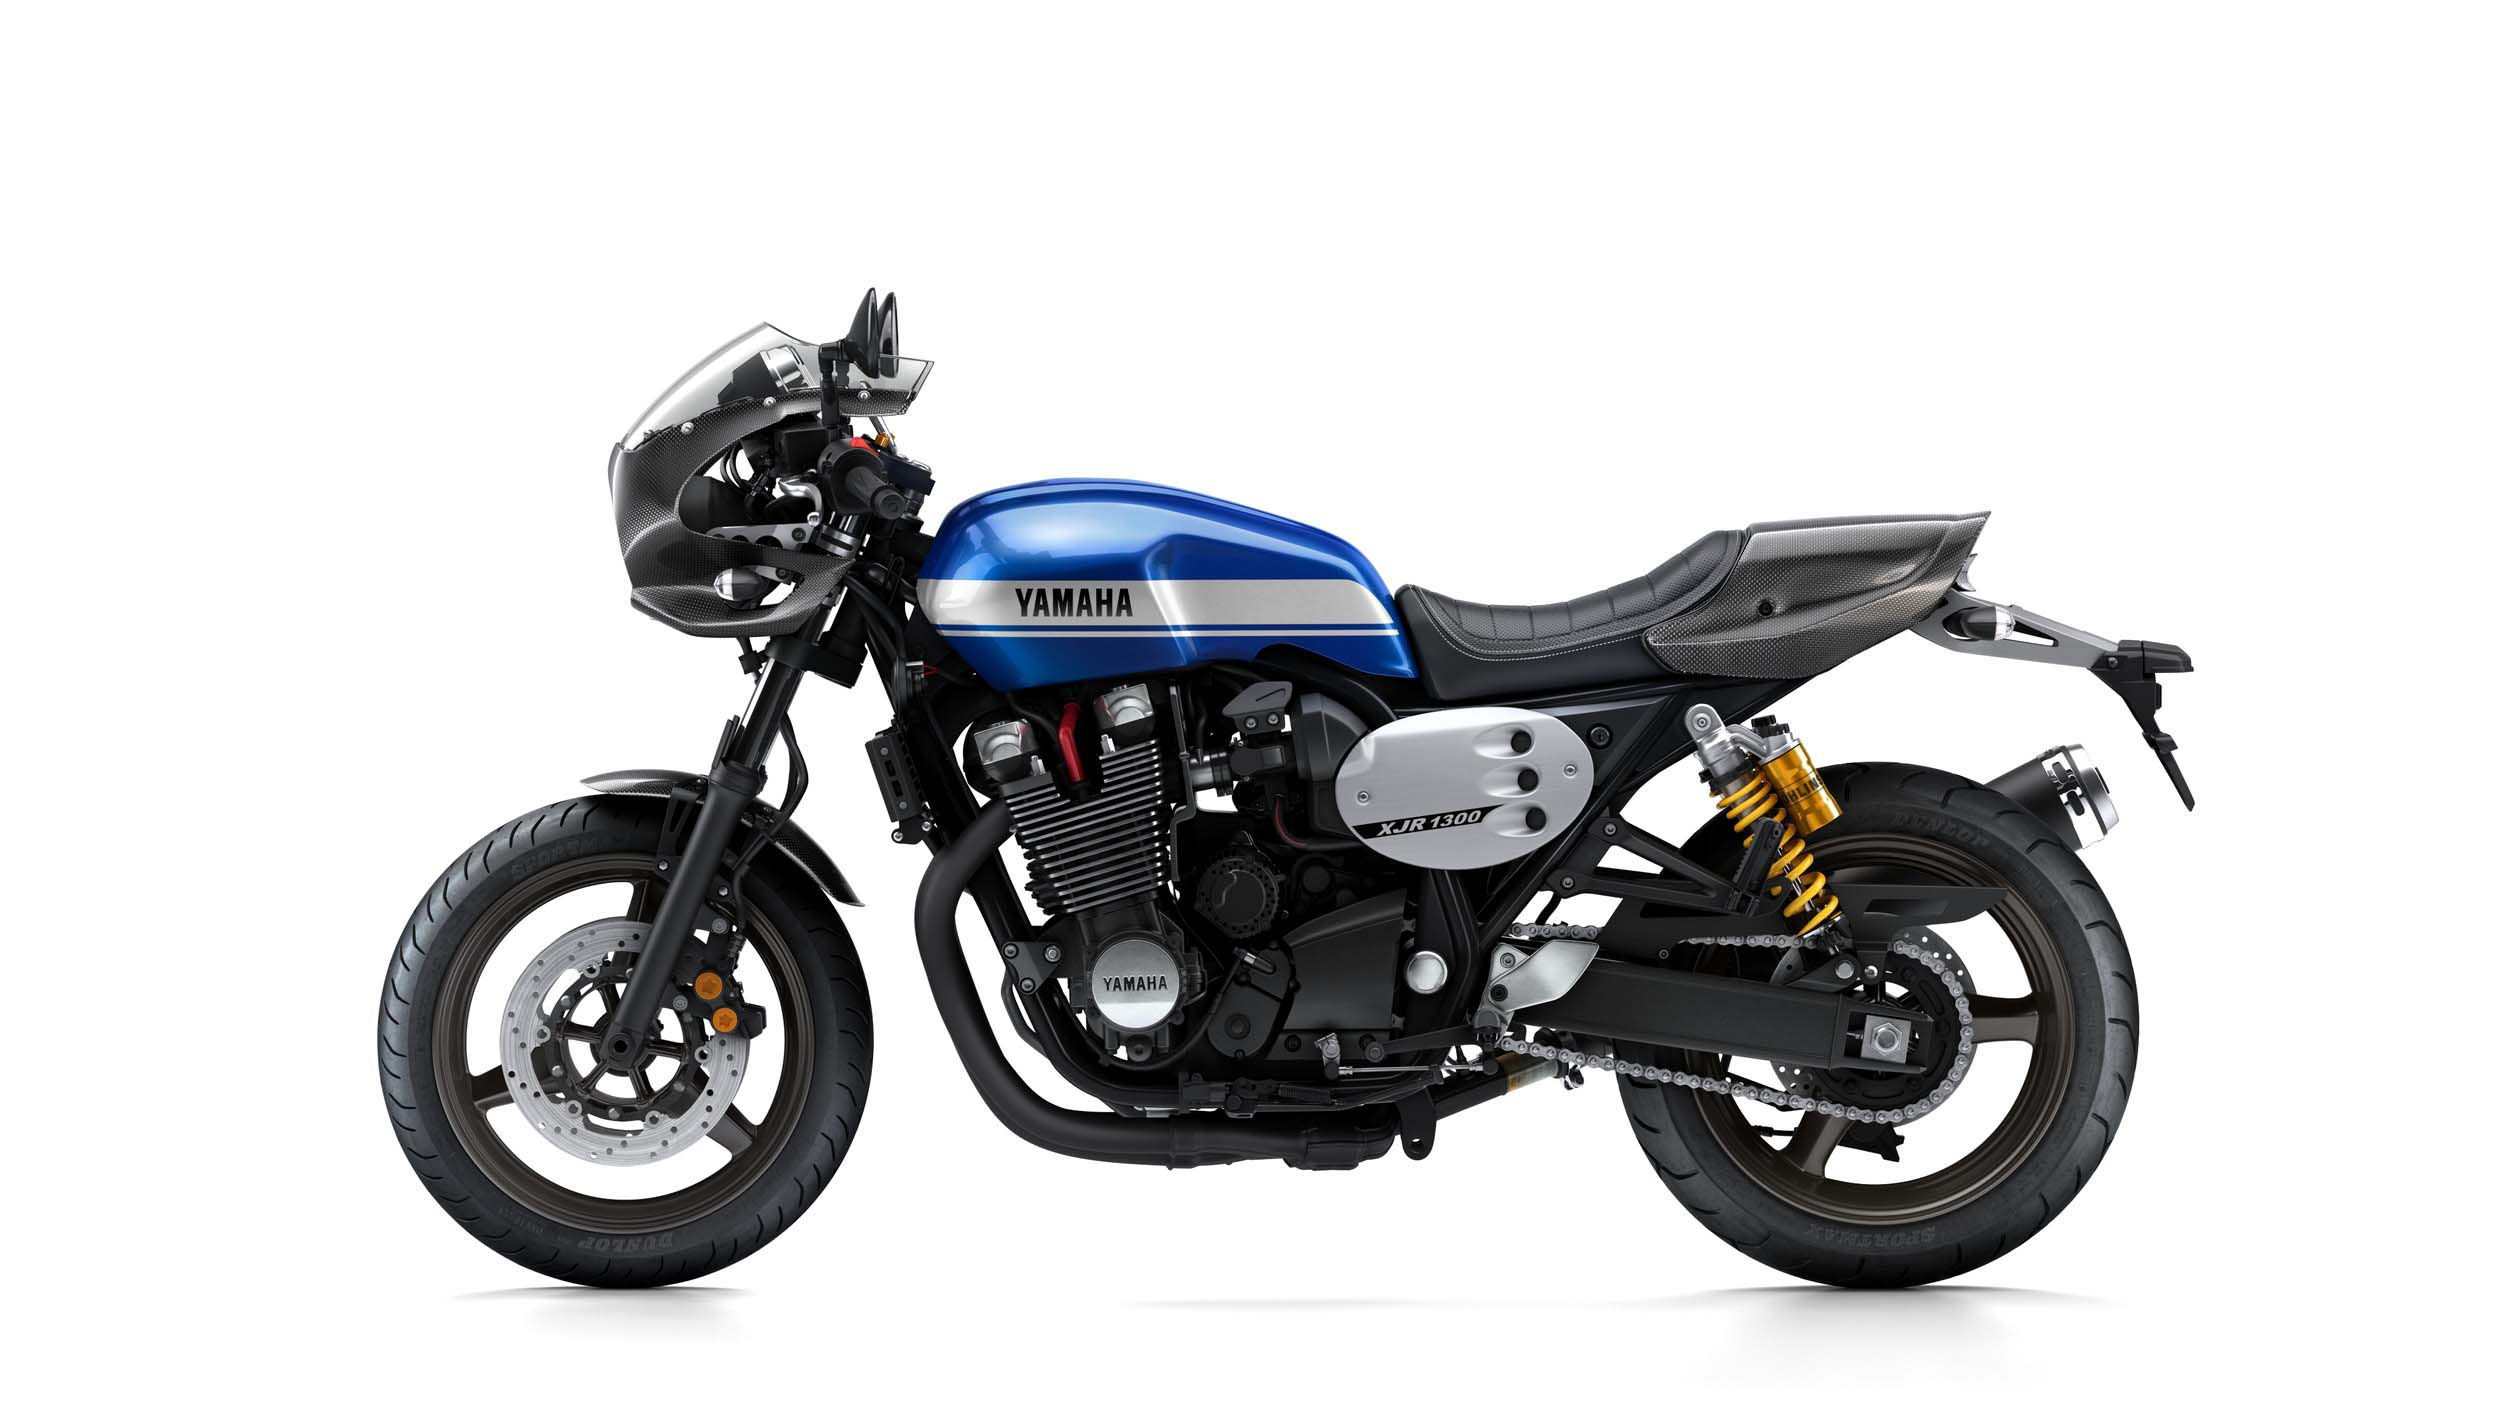 Yamaha xjr1300 photo - 10